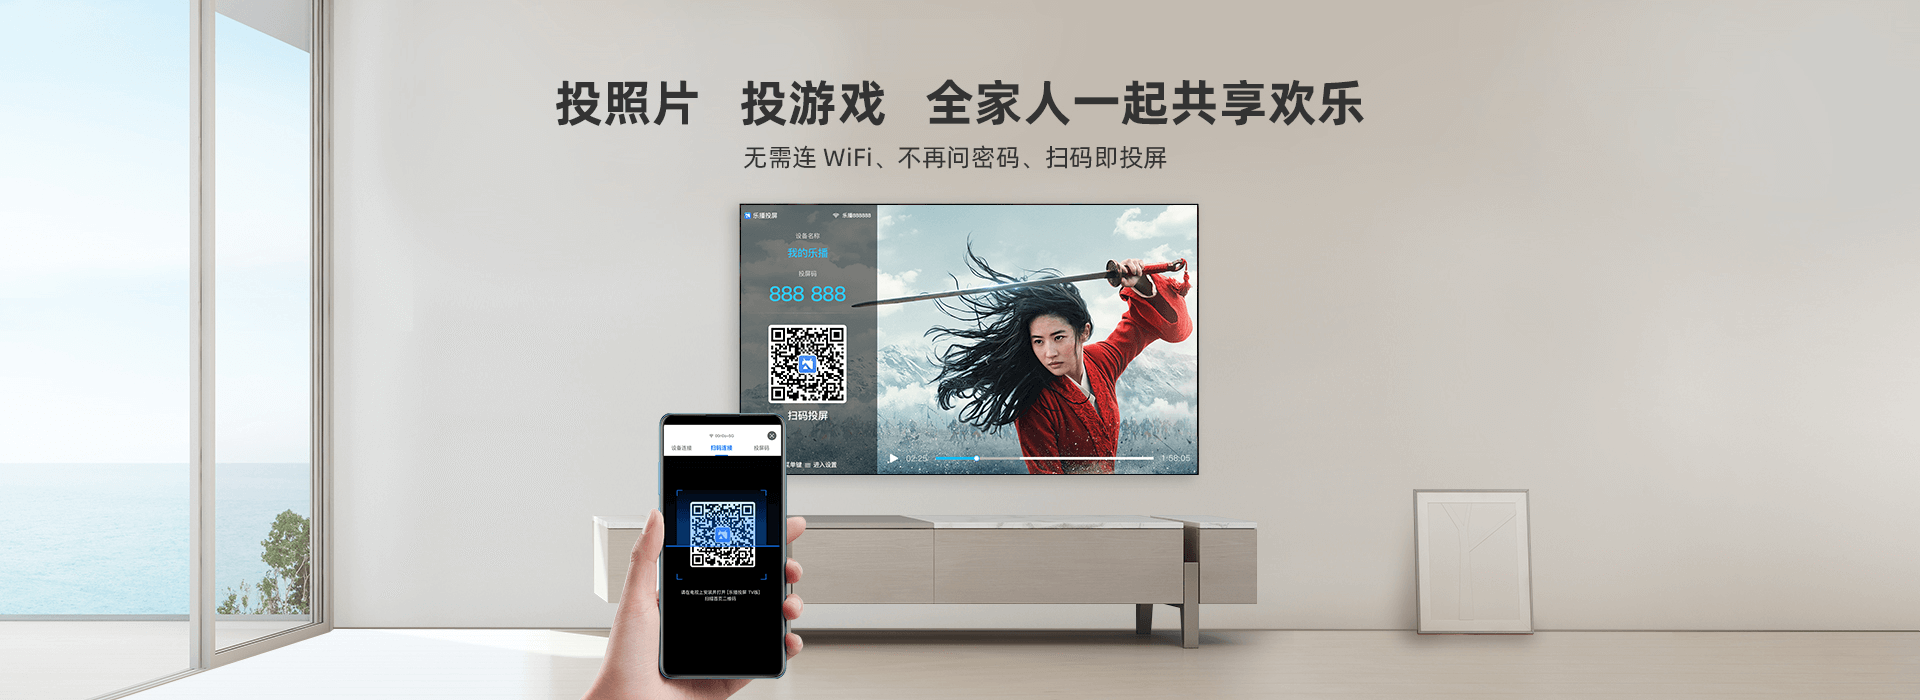 HappyCast official website - Download the wireless screen mirroring